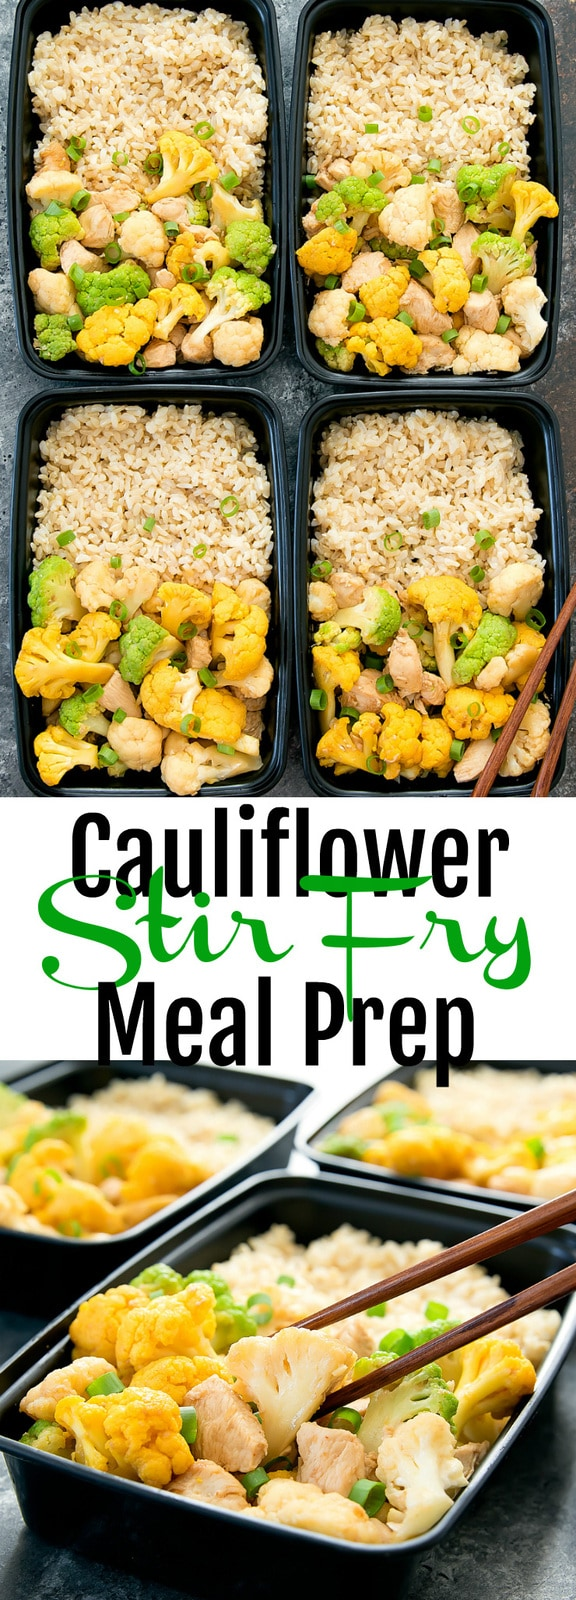 Cauliflower Stir Fry Meal Prep. An easy, healthy and flavorful stir fry dish that can be made ahead for your weekly meal prep. The cauliflower is coated in a honey garlic sauce and ready in about 30 minutes. #cauliflower #mealprep #stirfry